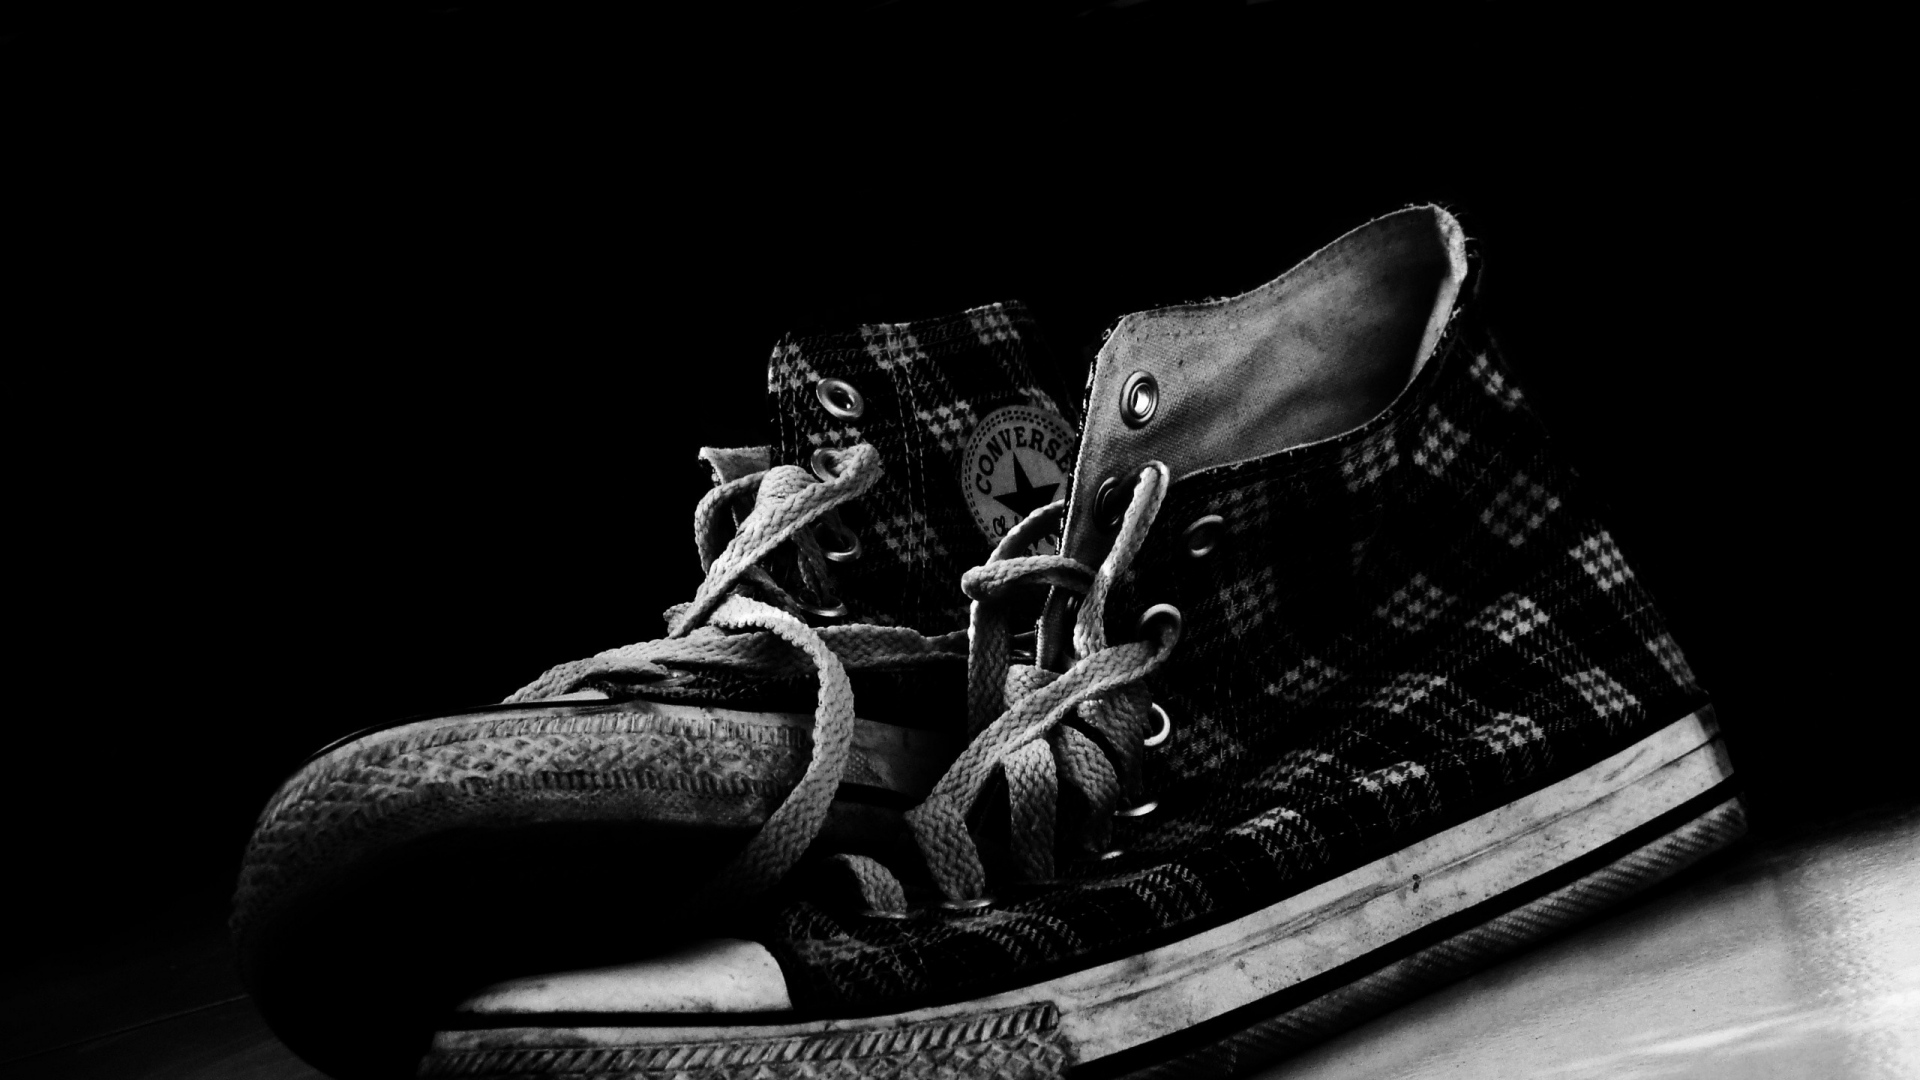 converse-sneakers-style-http-www-u-org-converse-sneakers-style-wallpaper-wp3404114